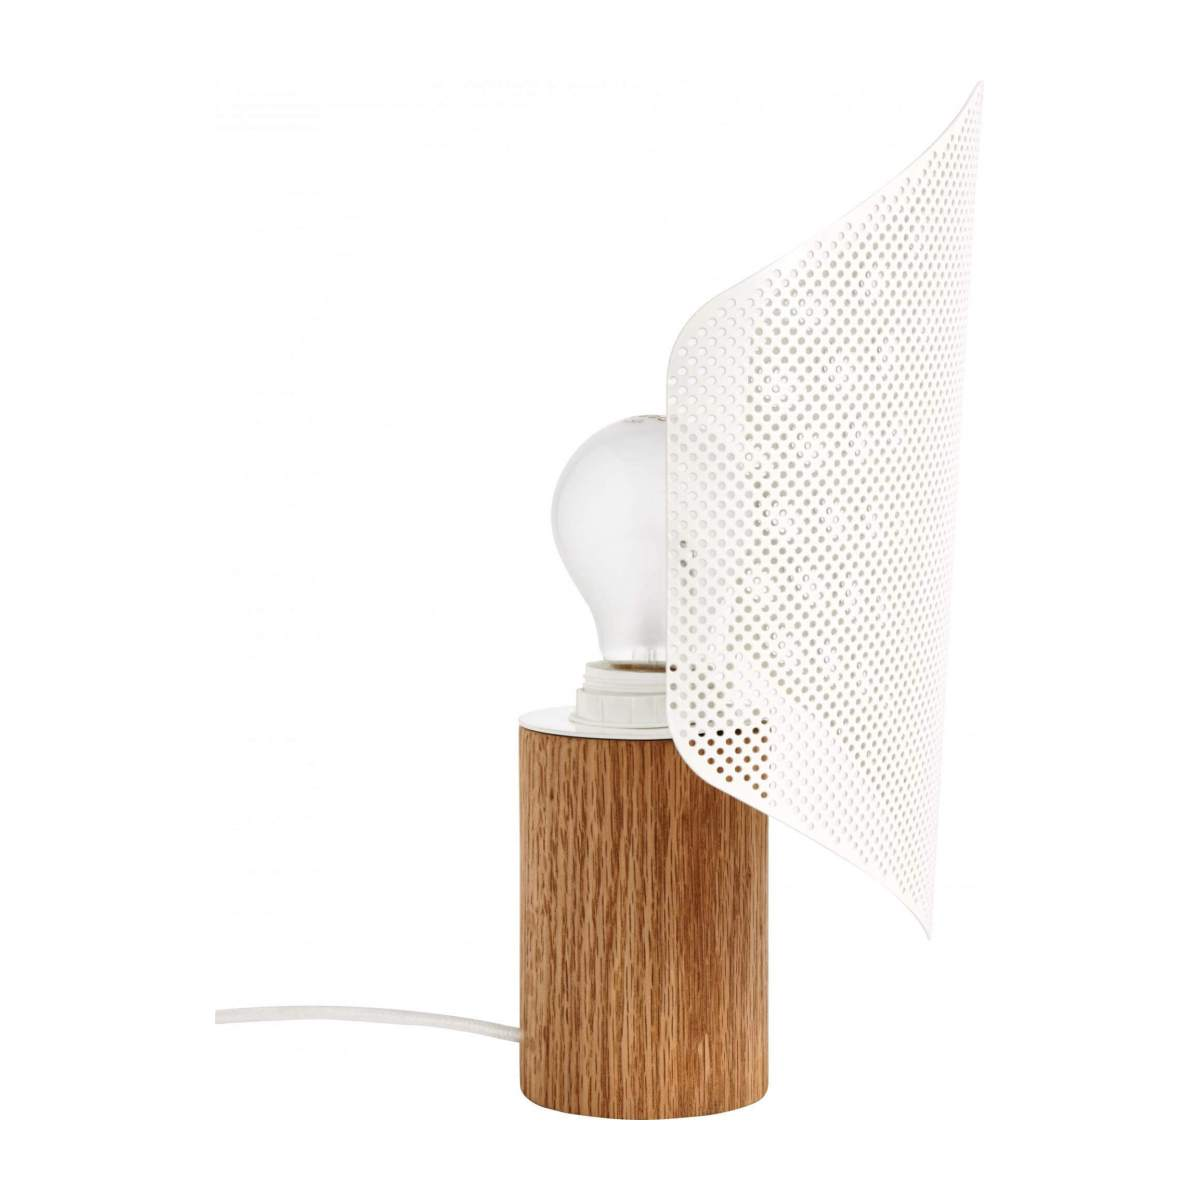 Lampe de table blanche n°6